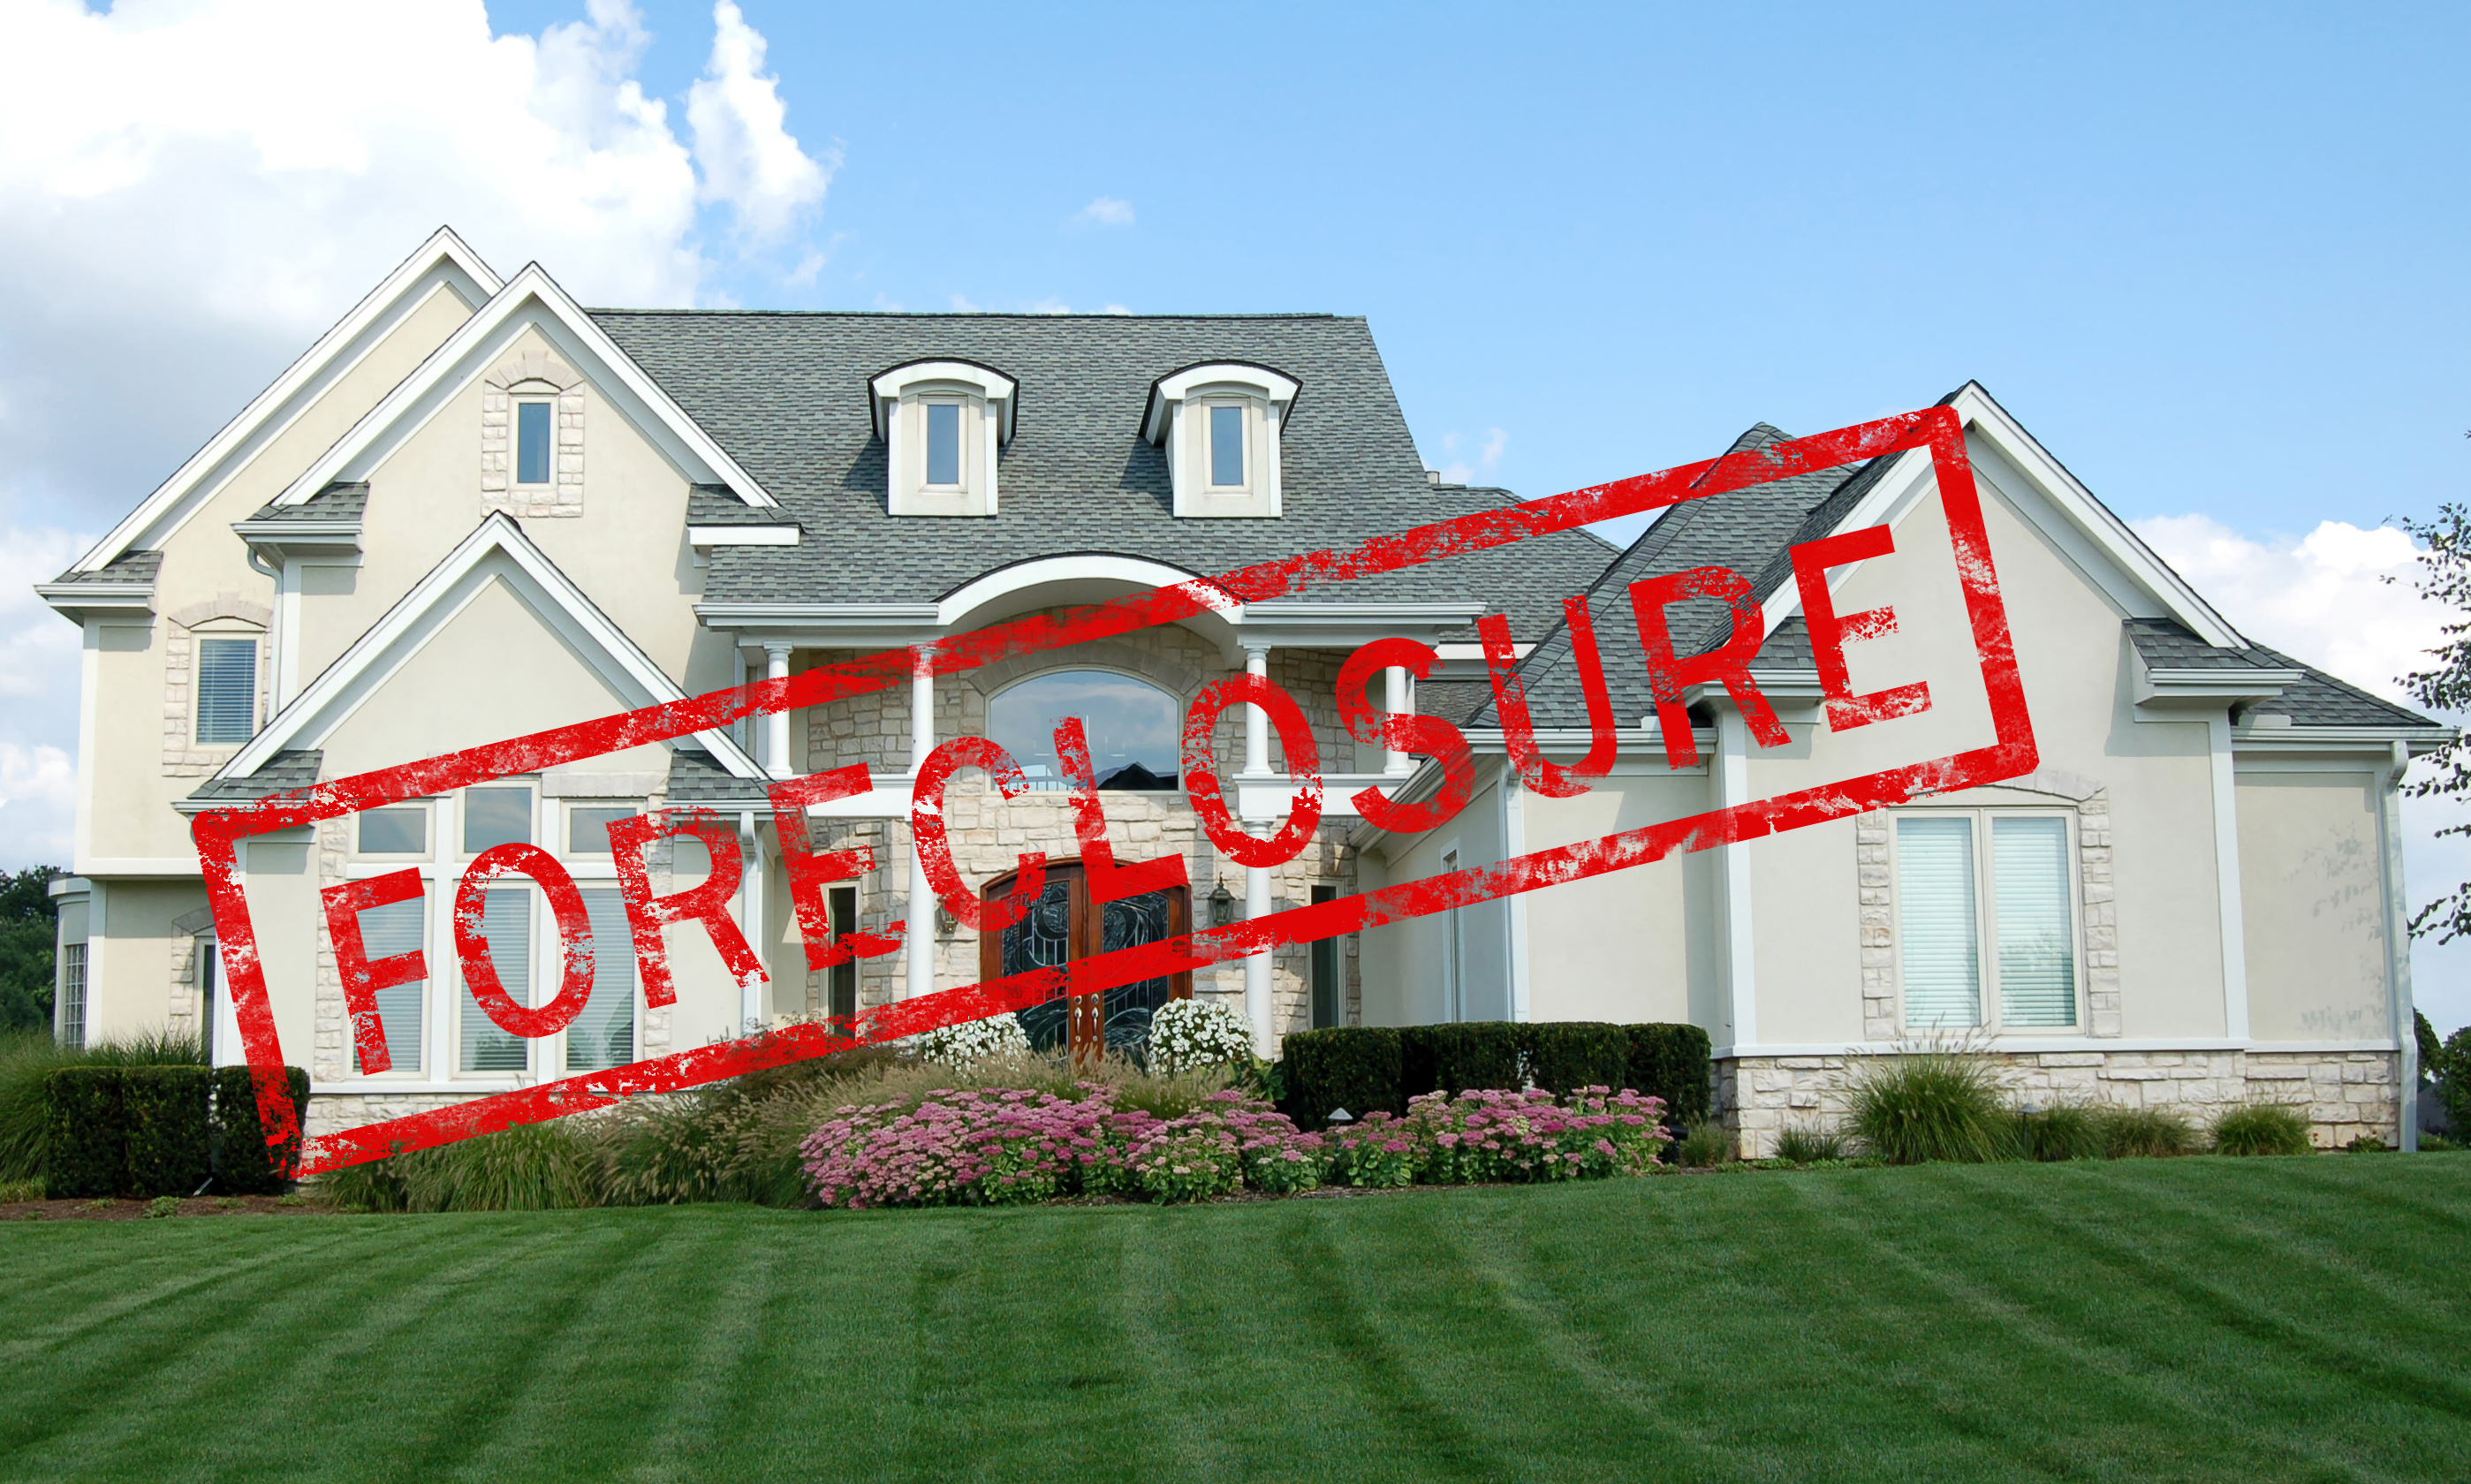 Call Campbell & Associates Appraisers, Inc. when you need valuations regarding Broward foreclosures